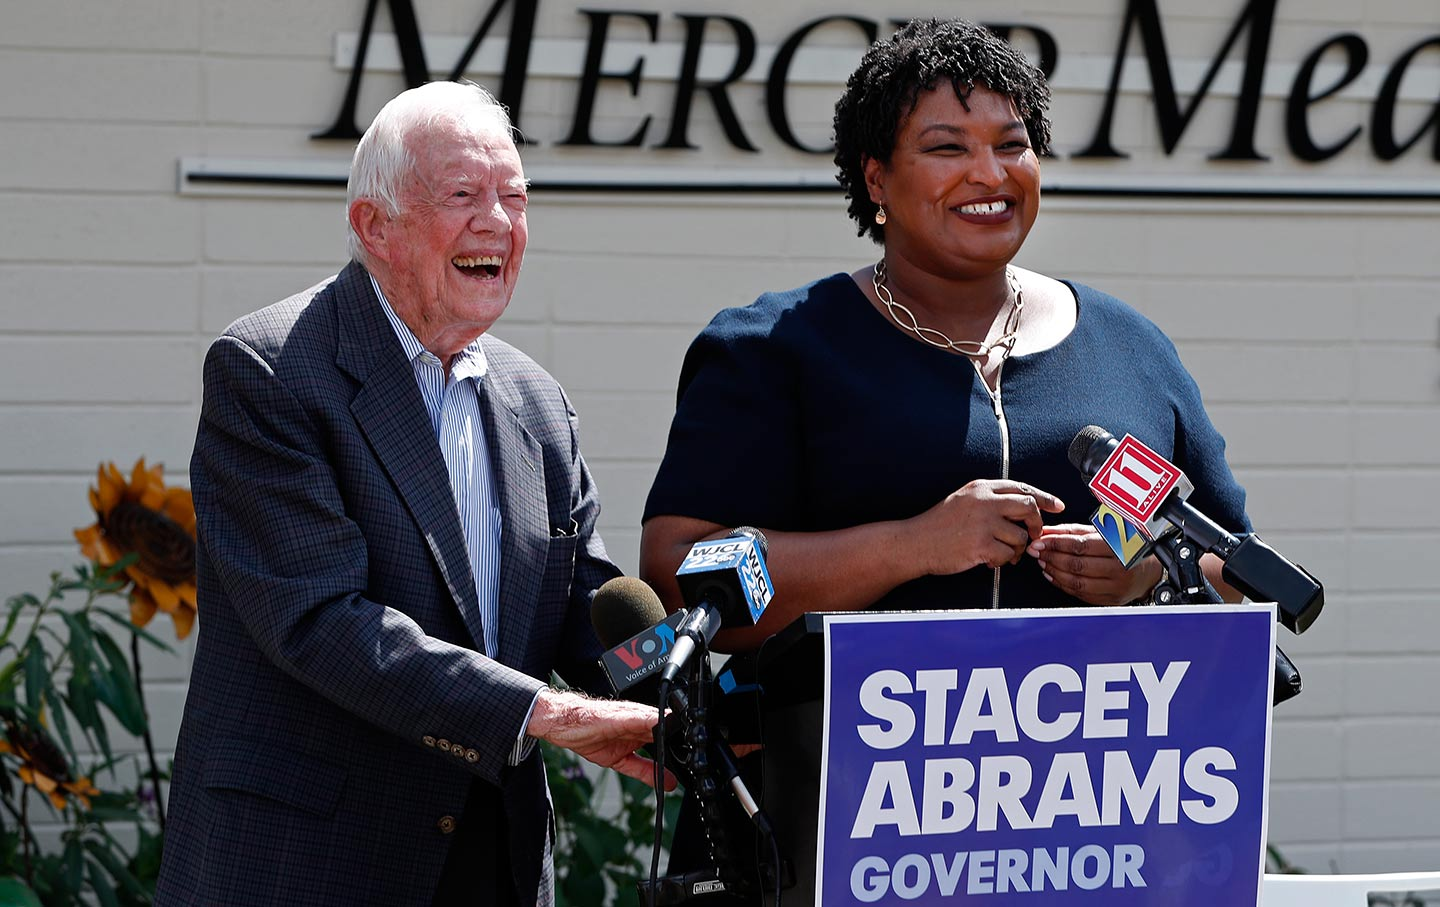 JImmy Carter and Stacey Abrams